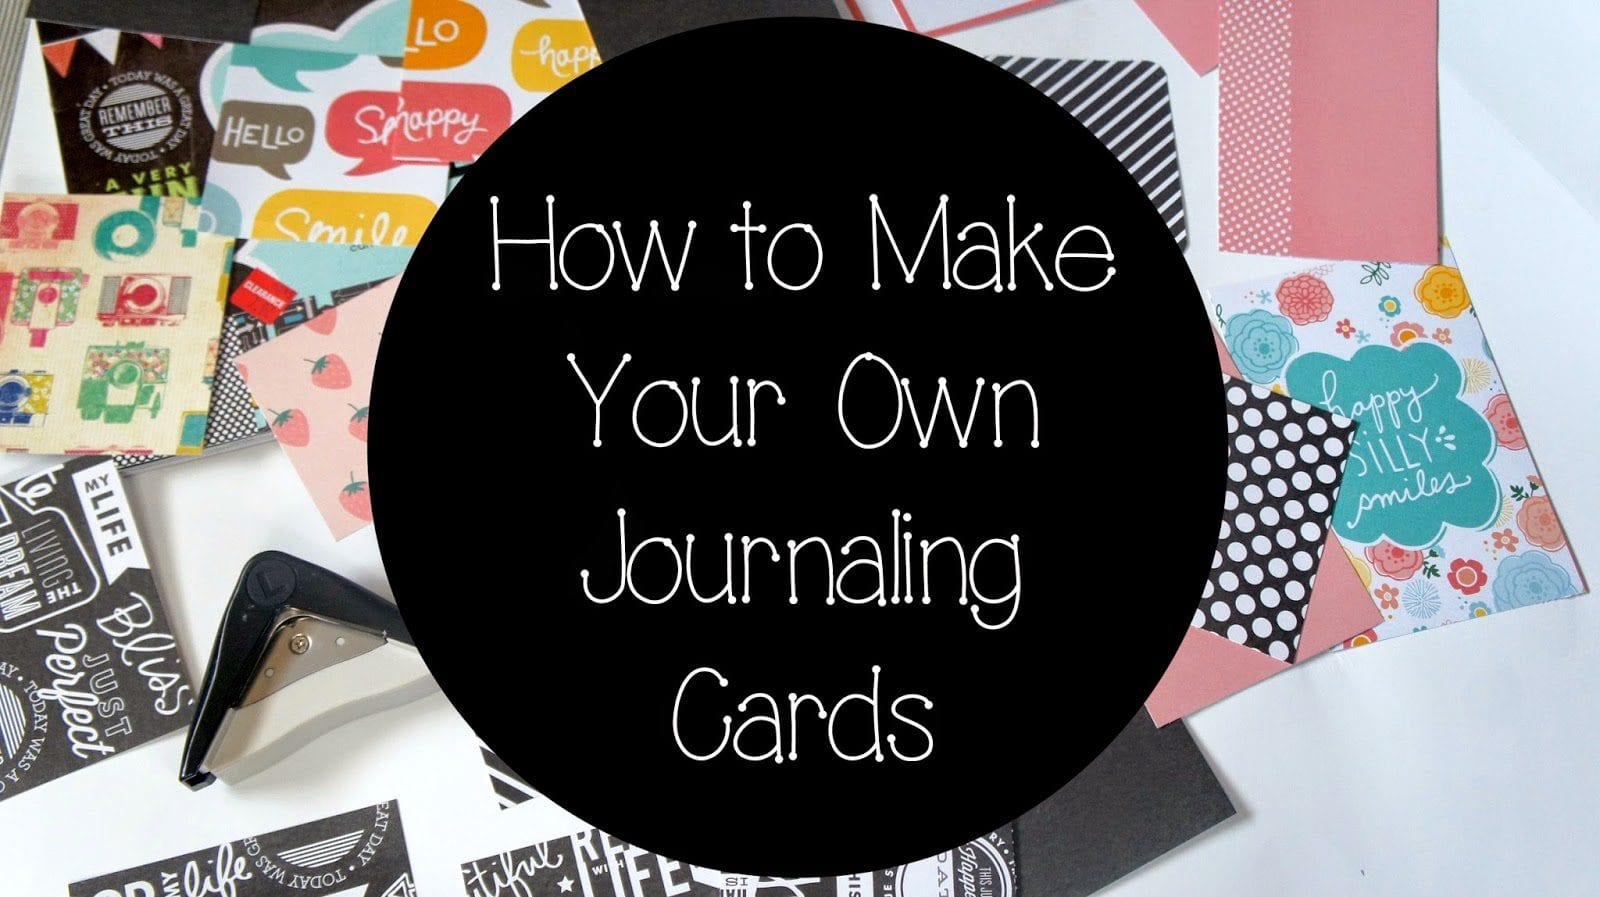 How To Make Your Own Journaling Cards Easily